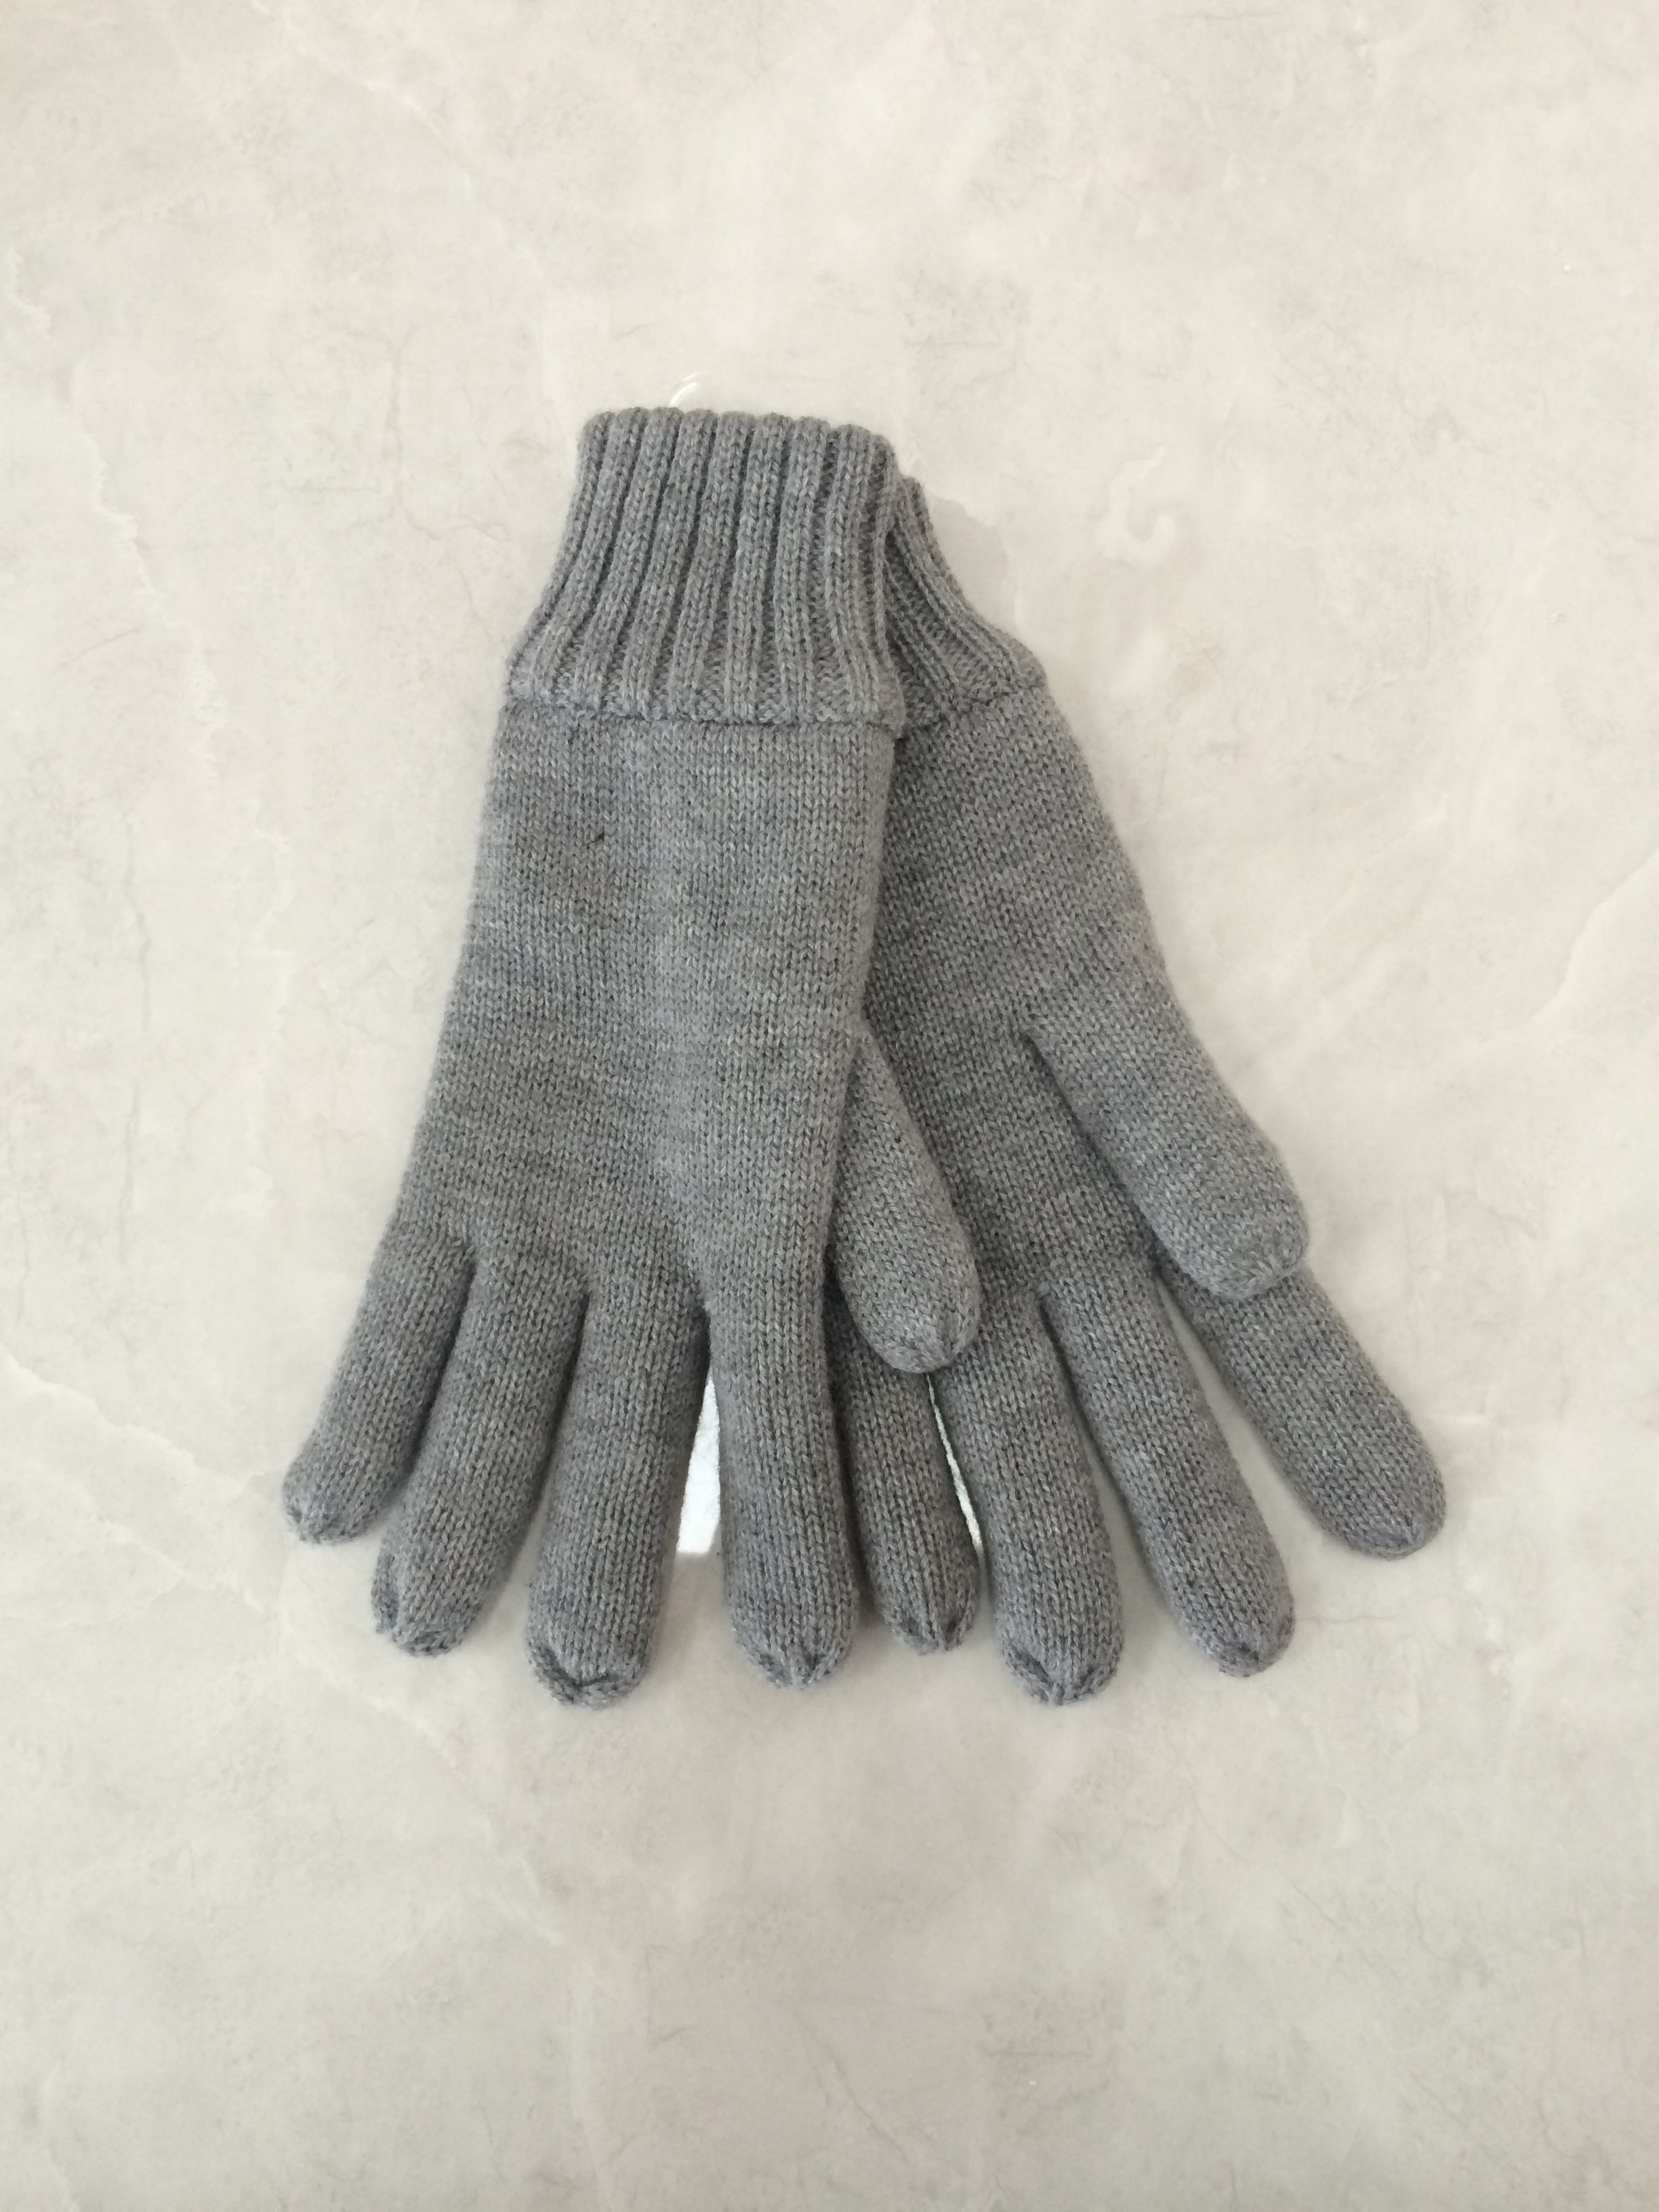 Warm Adult Knitting Winter Gloves